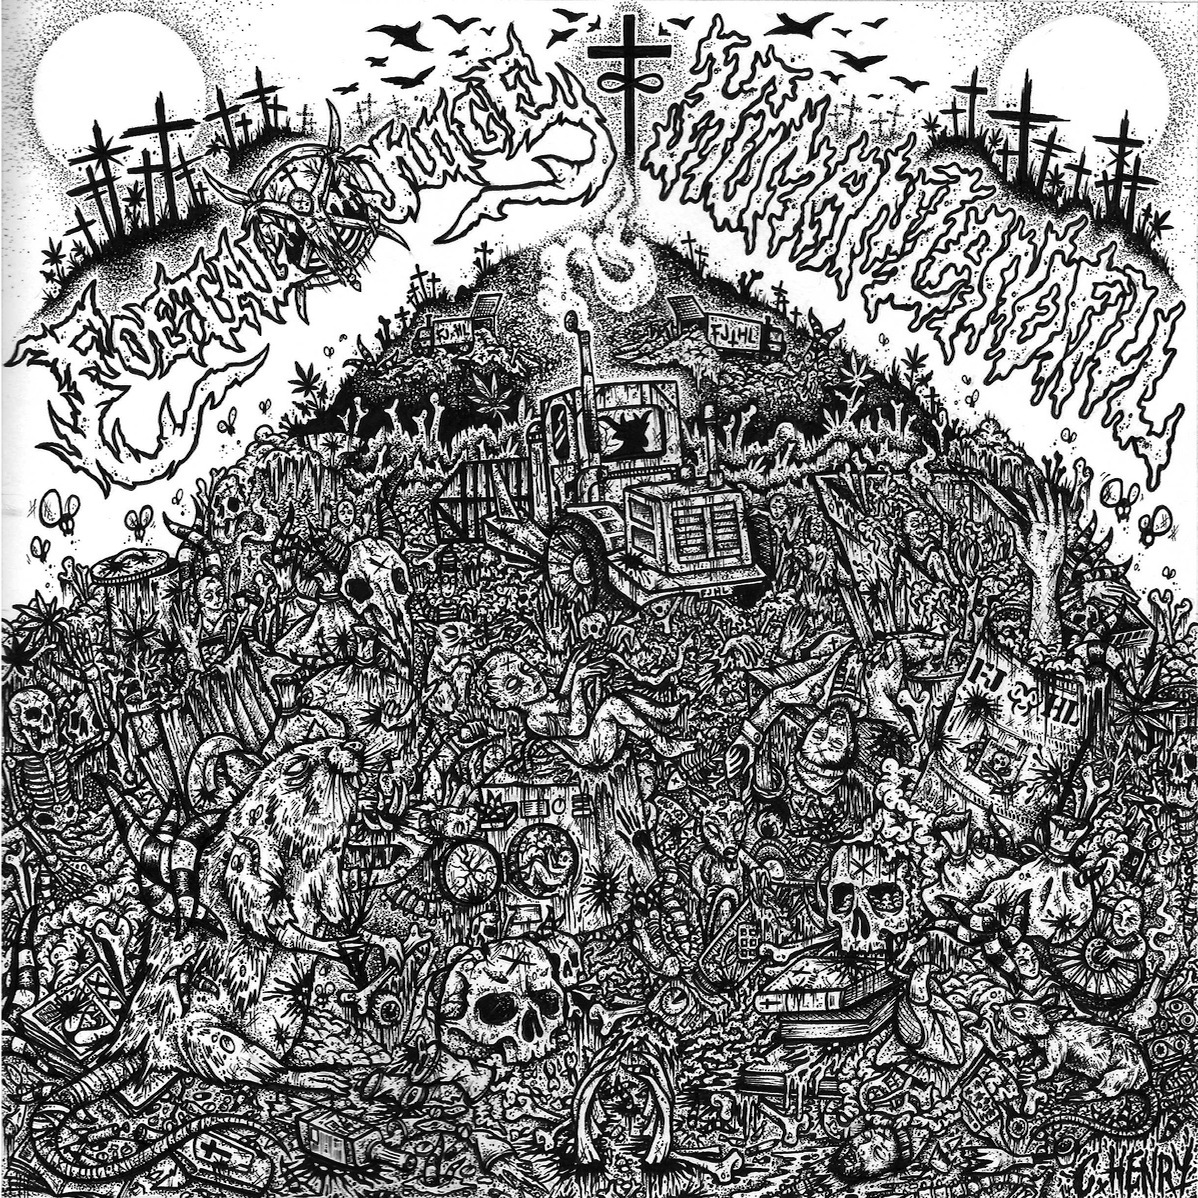 Foetal Juice - Split with Human Landfill